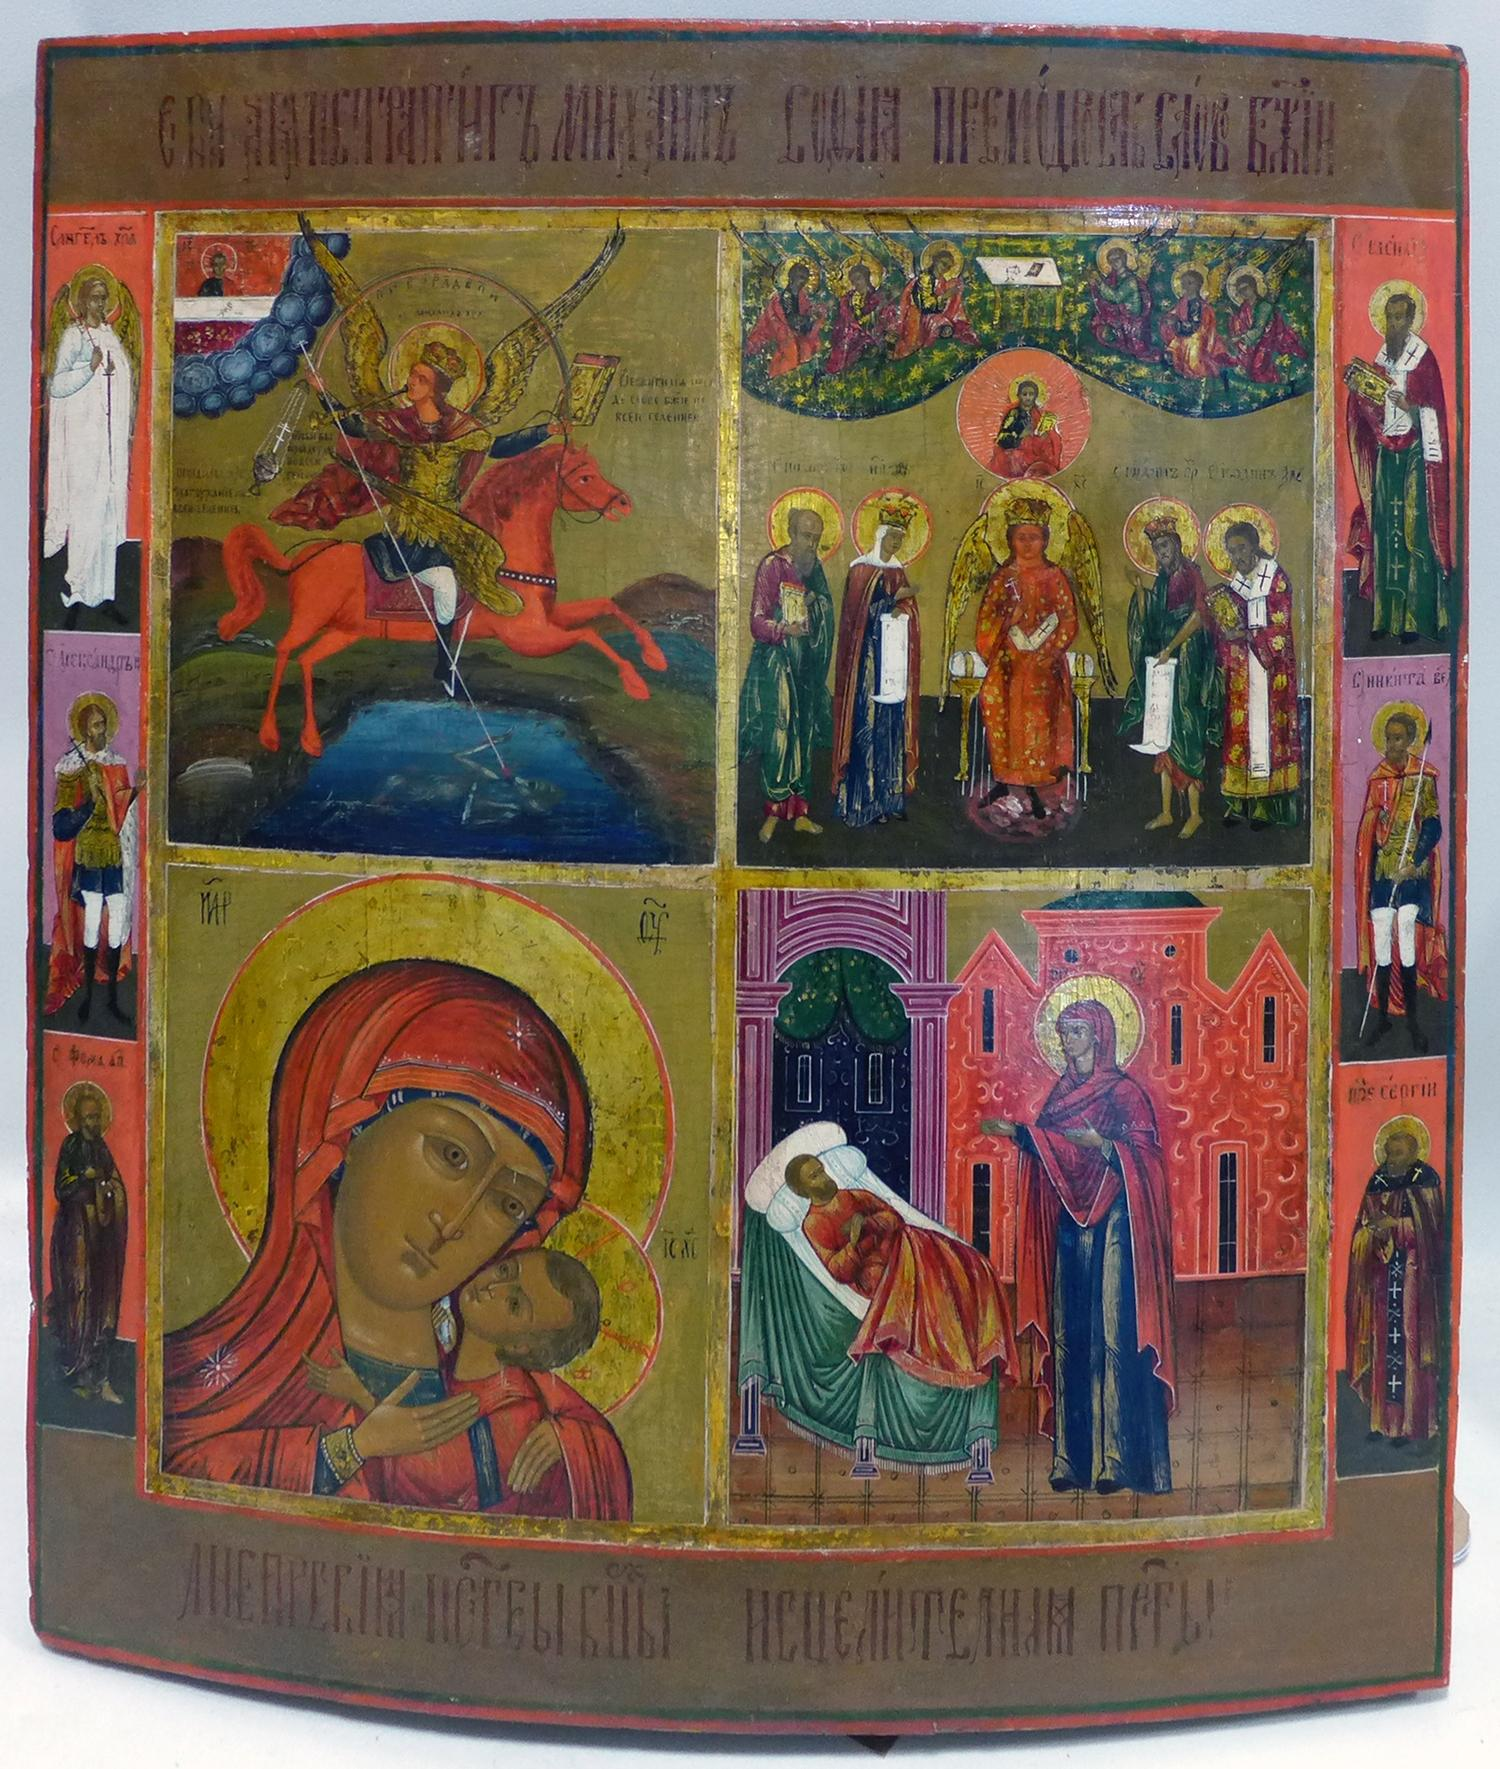 Lot 7 - A large quadripartite Russian icon depicting the Archangel Michael, St Sophia the Wisdom of God, the